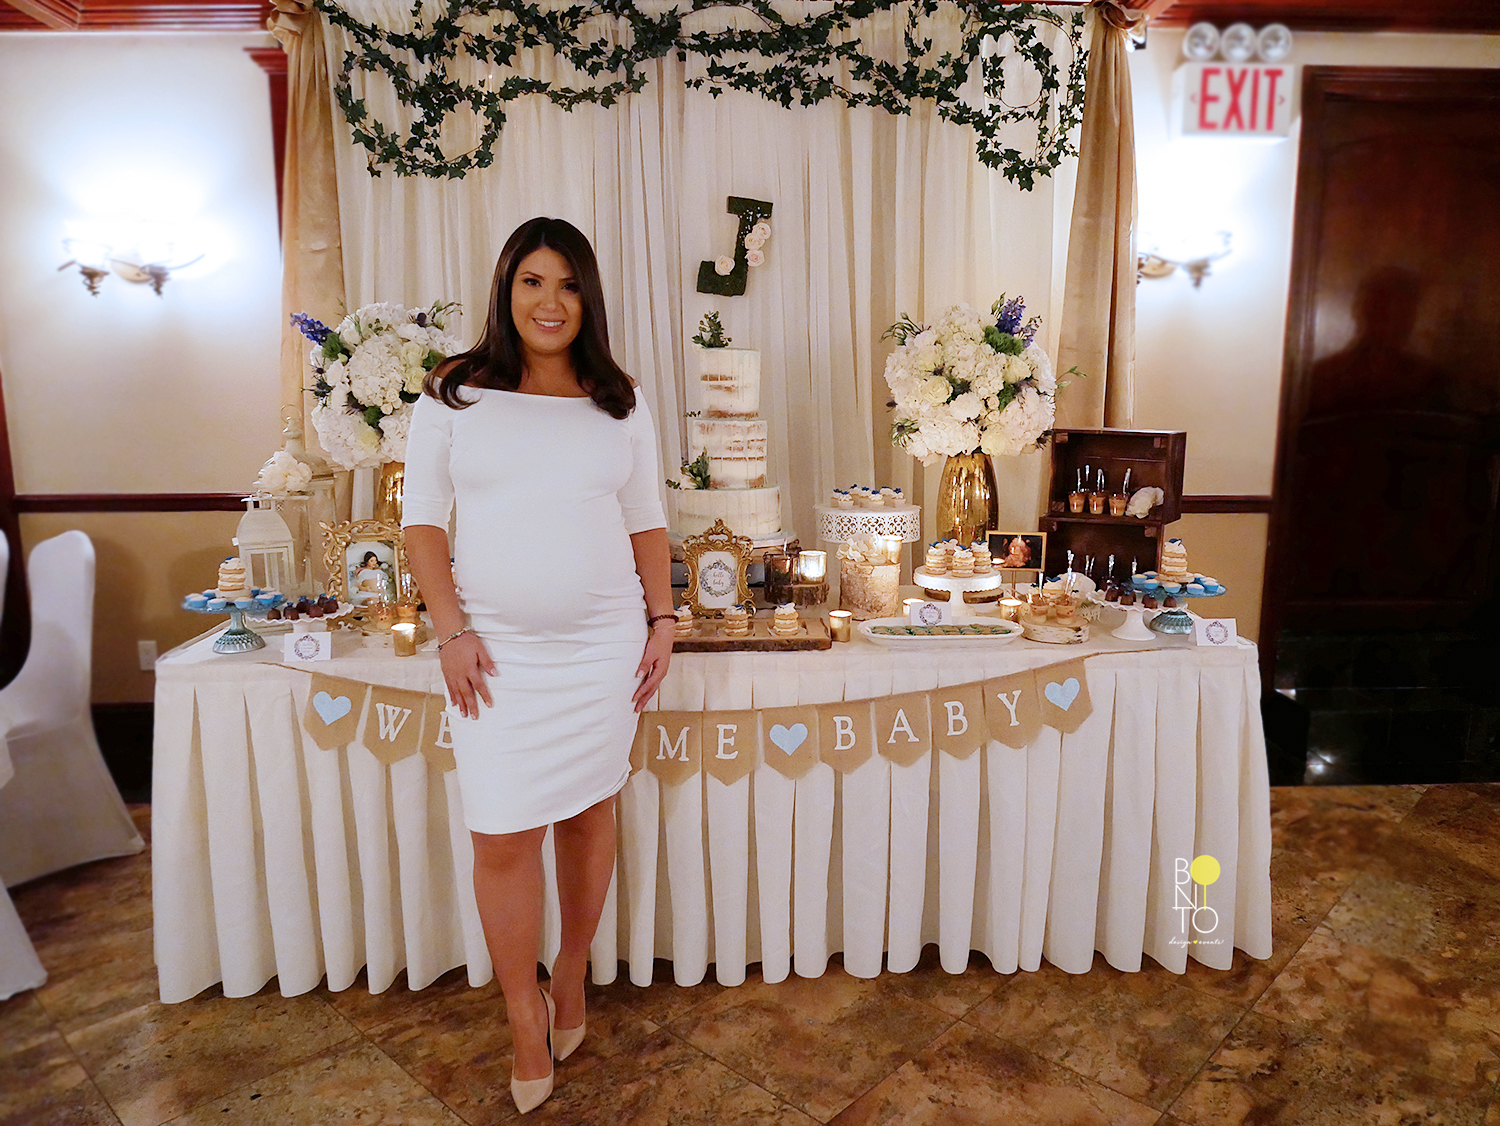 A  Rustic Garden Baby  Shower to Welcome Baby Justin! Loved the romantic feel and style my client requested specially for a Baby Boy Shower. Yes, It's a Boy Shower with Elegance.  This lovely Mommy-to-be, currently Mommy, had this baby shower themed all envisioned. To make her vision come to life we worked with  Diva Blooms  who just rocked it with gorgeous Flower Arrangements, Welcome sign and backdrop draping with greenery. The breathless naked cake from  Magdeline's Cake  and delicate desserts from  Juliana Sugar Shop  gave the dessert table such amazing touches. We added candles everywhere to create the perfect mood.   To stick to the Rustic Style we used burlap, tree slices, birch slaps, wood, twine, crates, lanterns and greenery for our main decor. The final product was a room that radiating beauty.